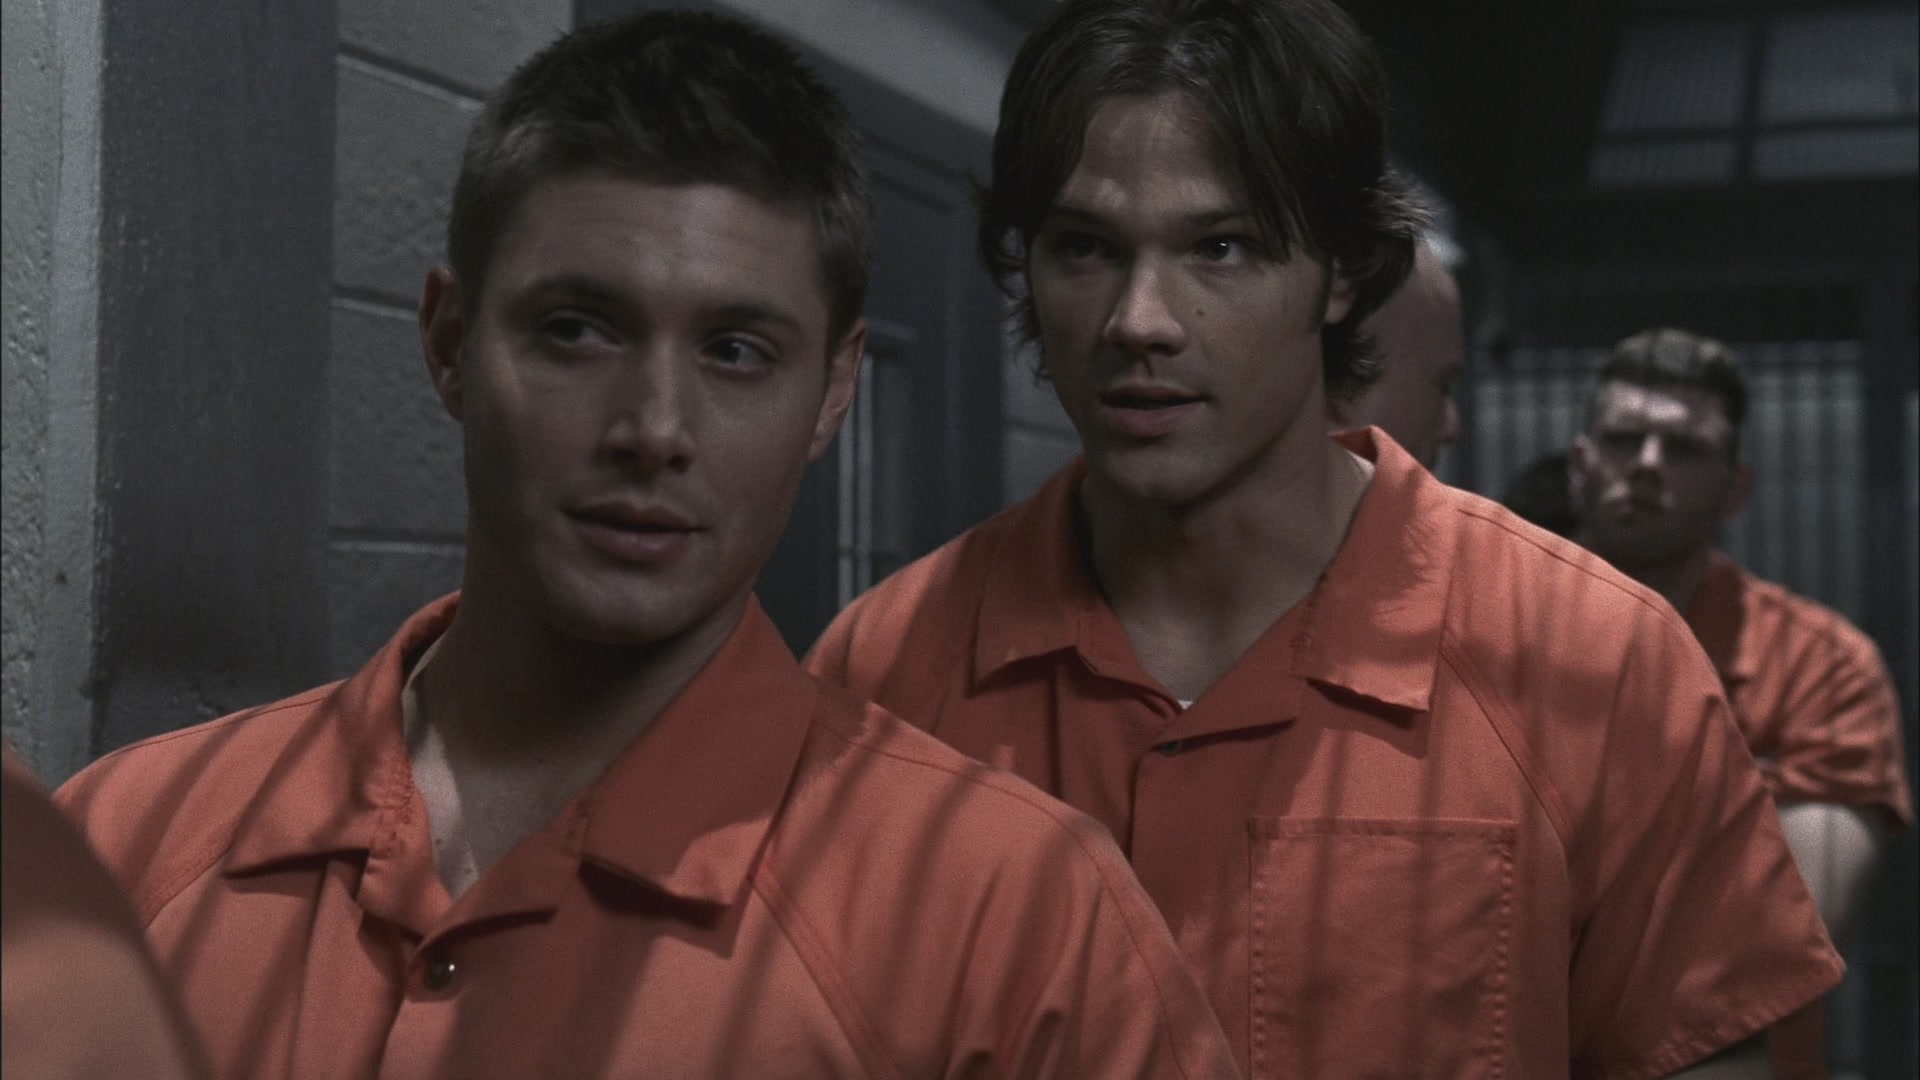 https://thewinchesterfamilybusiness.com/images/CaptionThis/SPN02x19.jpg